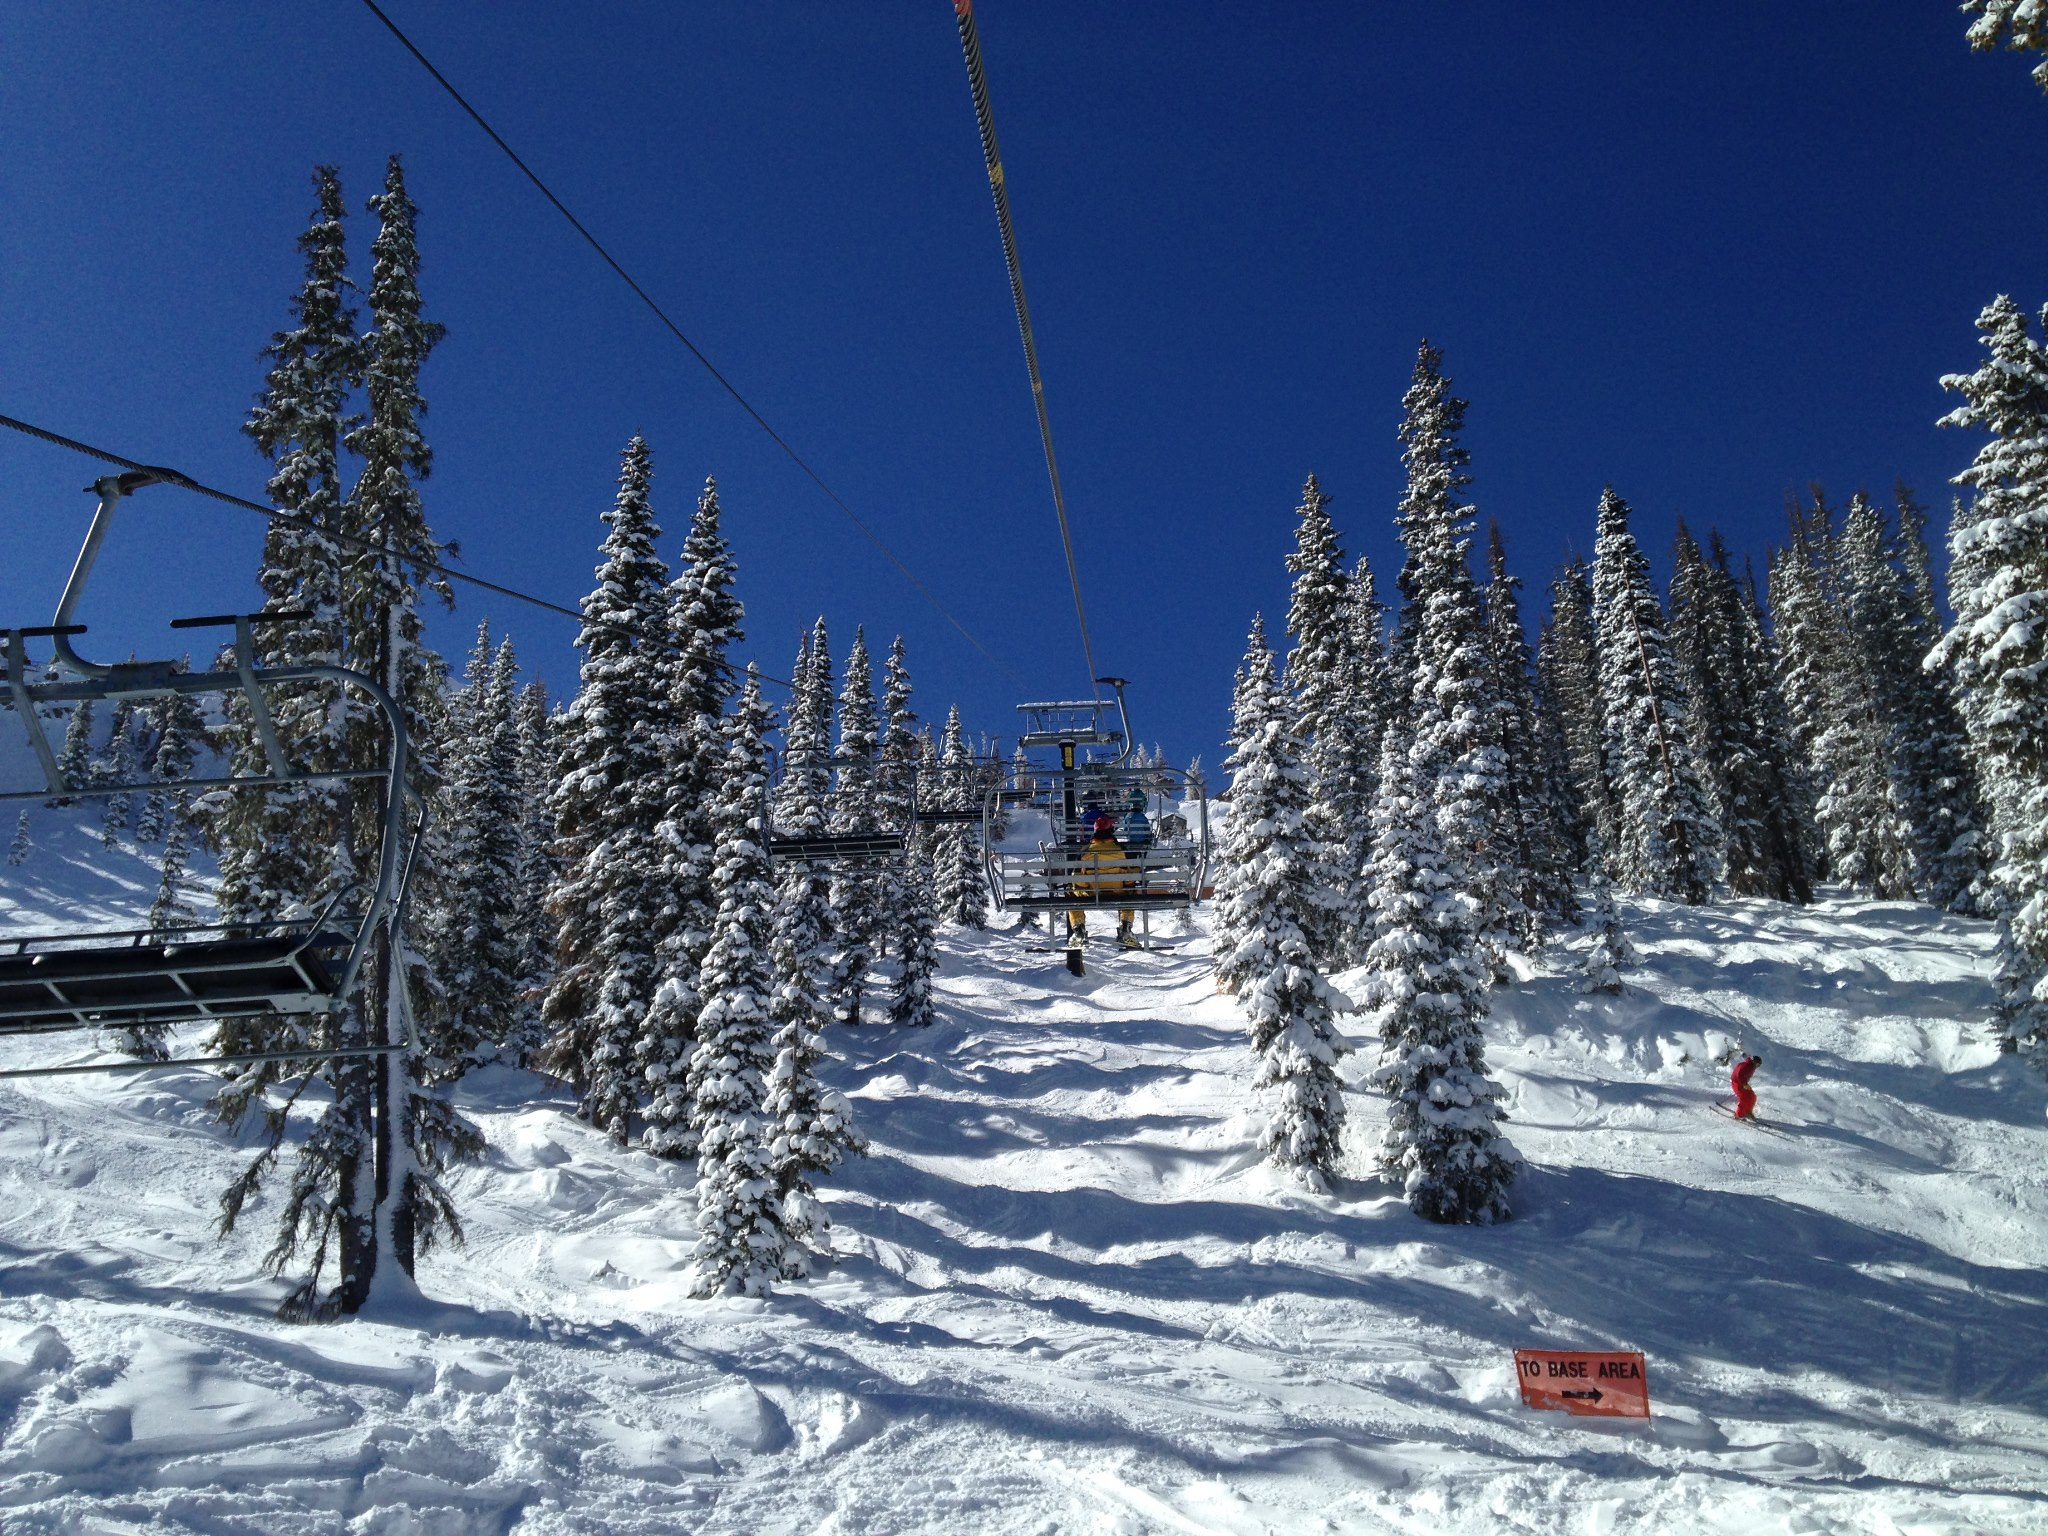 10 ways to spend winter in pagosa springs for Ski cabins in colorado